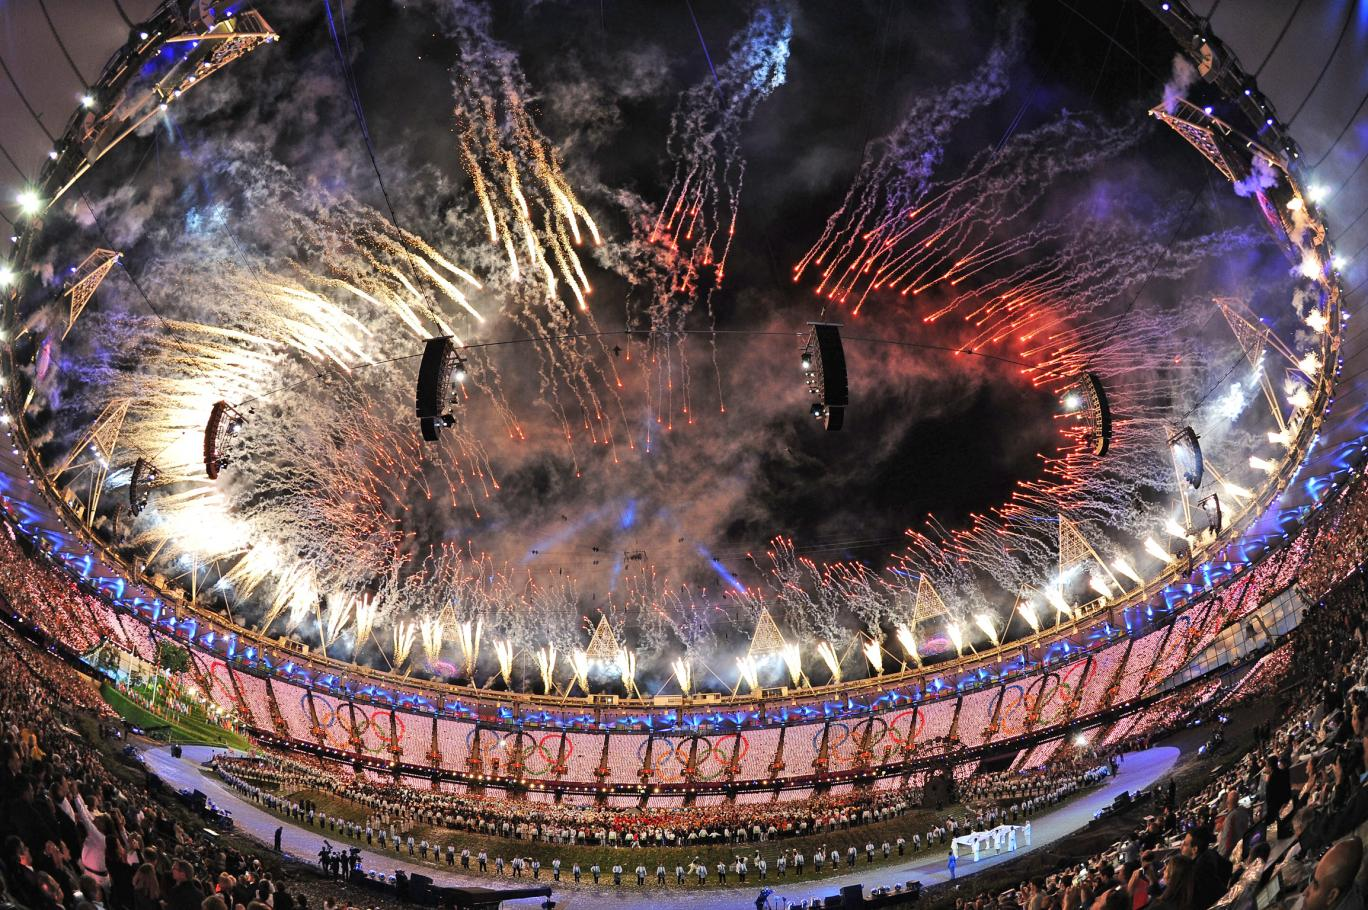 Some of the 2012 London Olympics staff are 'still waiting to get paid'